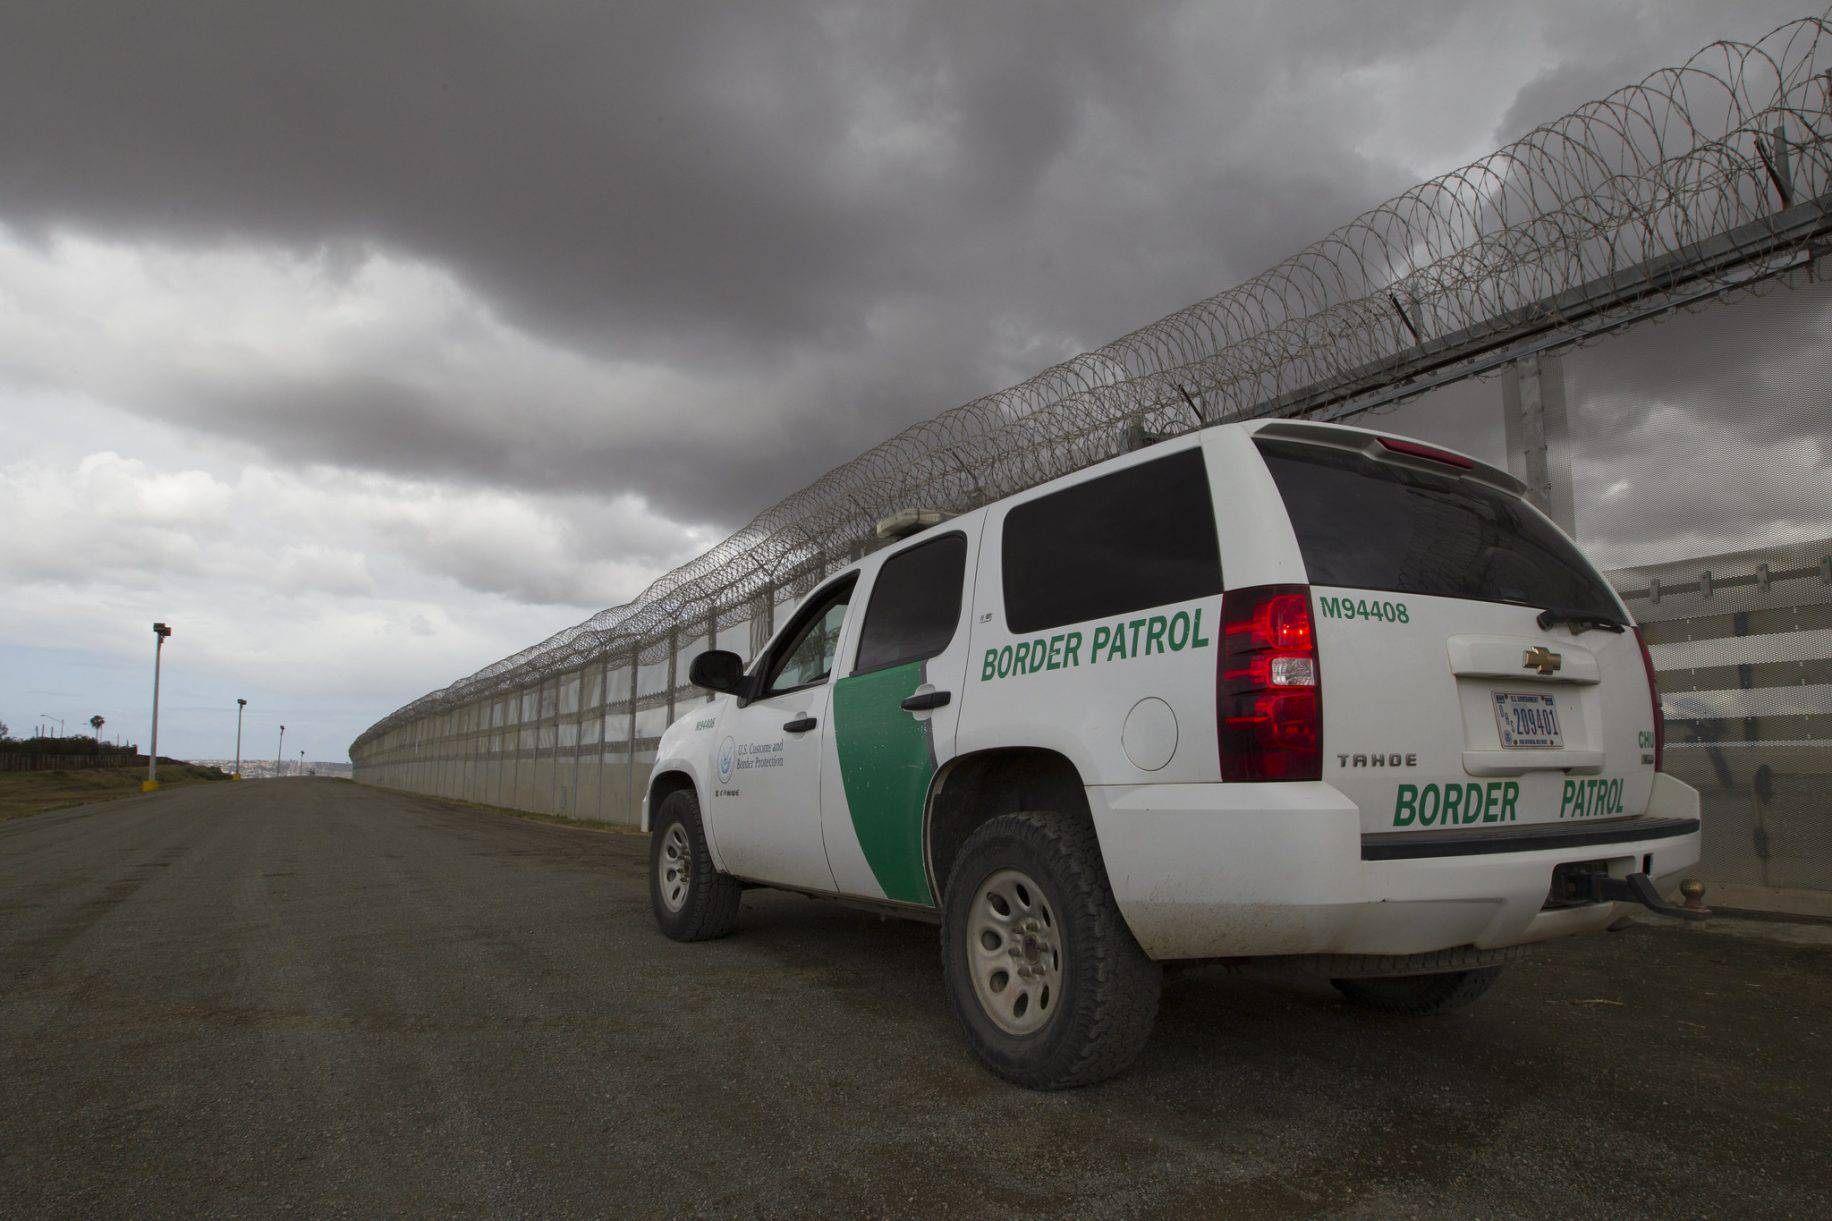 A Border Patrol vehicle sits along the border fenceline separating San Diego and Tijuana Mexico watching for illegal crossings in March 2016.